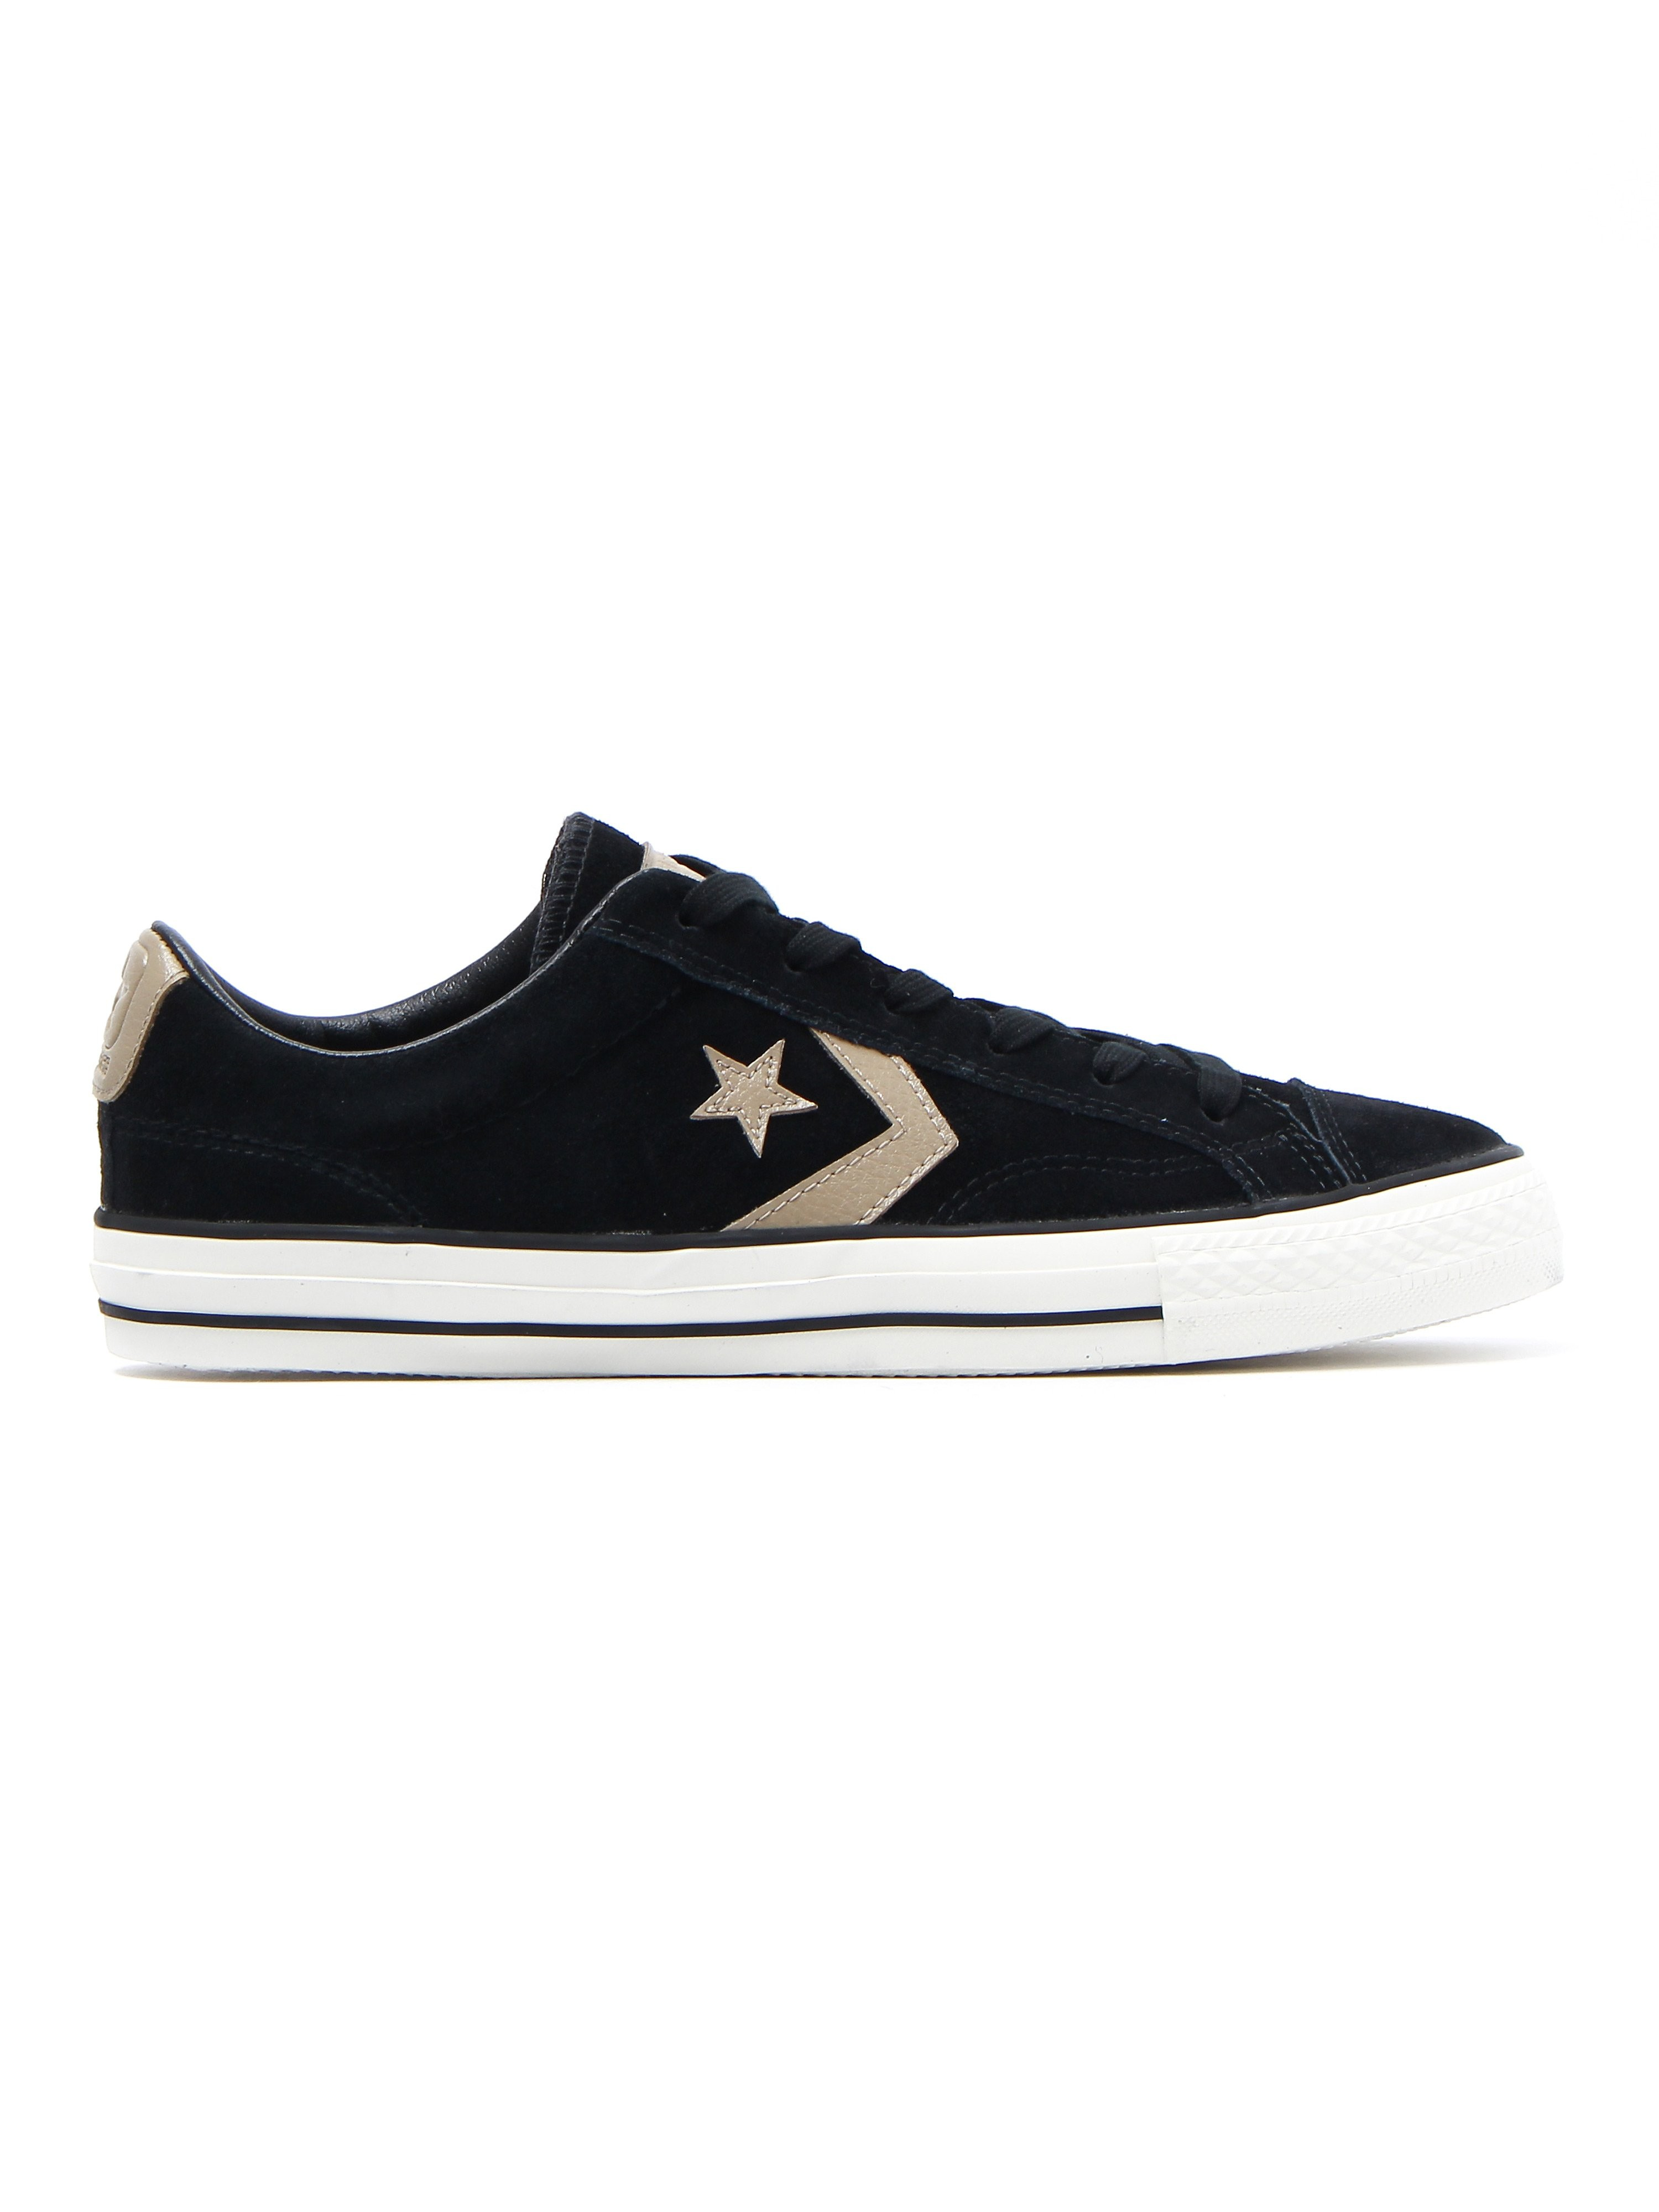 Converse Men's Star Player OX Trainers - Black Suede